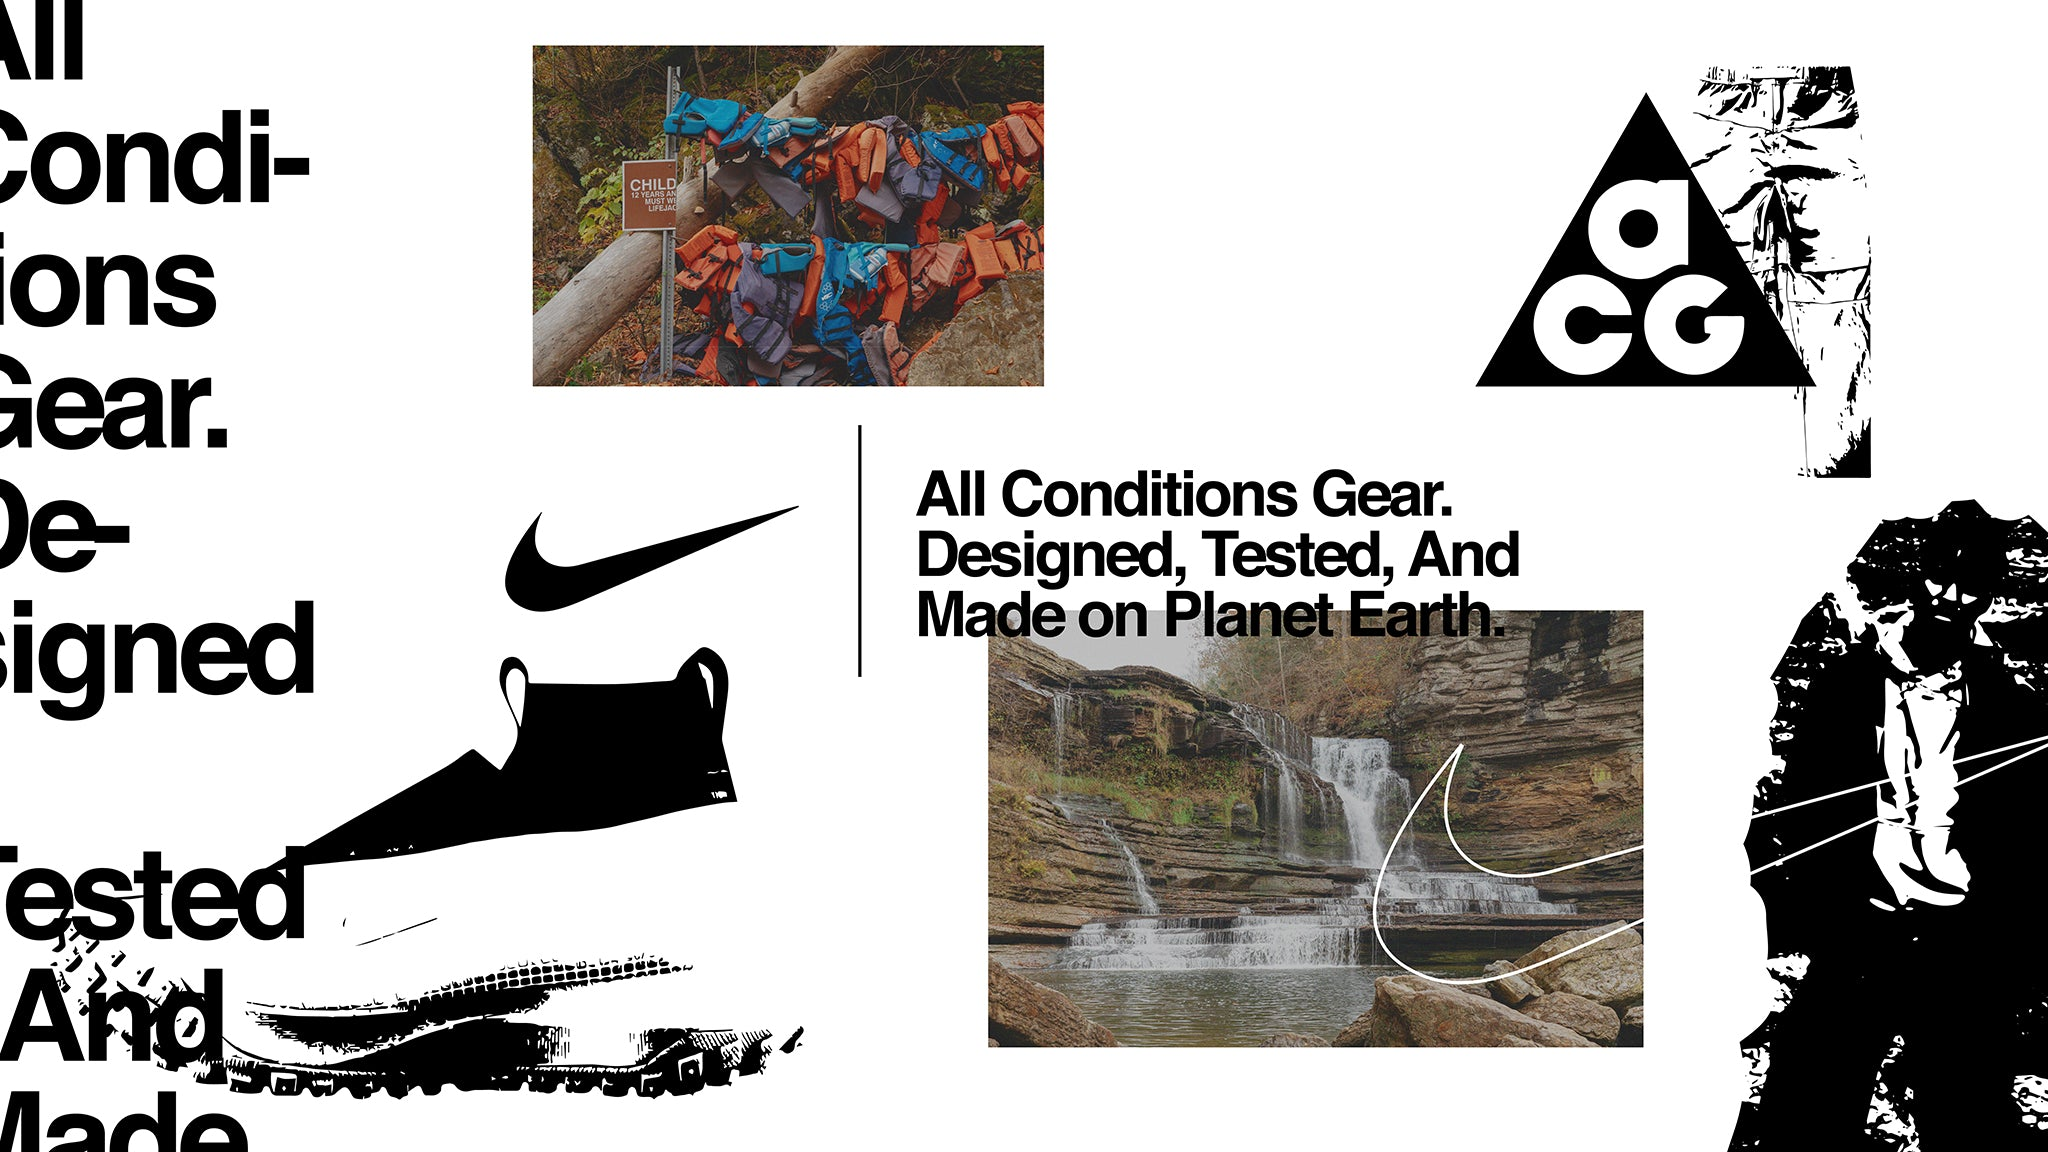 Nike ACG ROOTED-November-DeShawn Oravetz